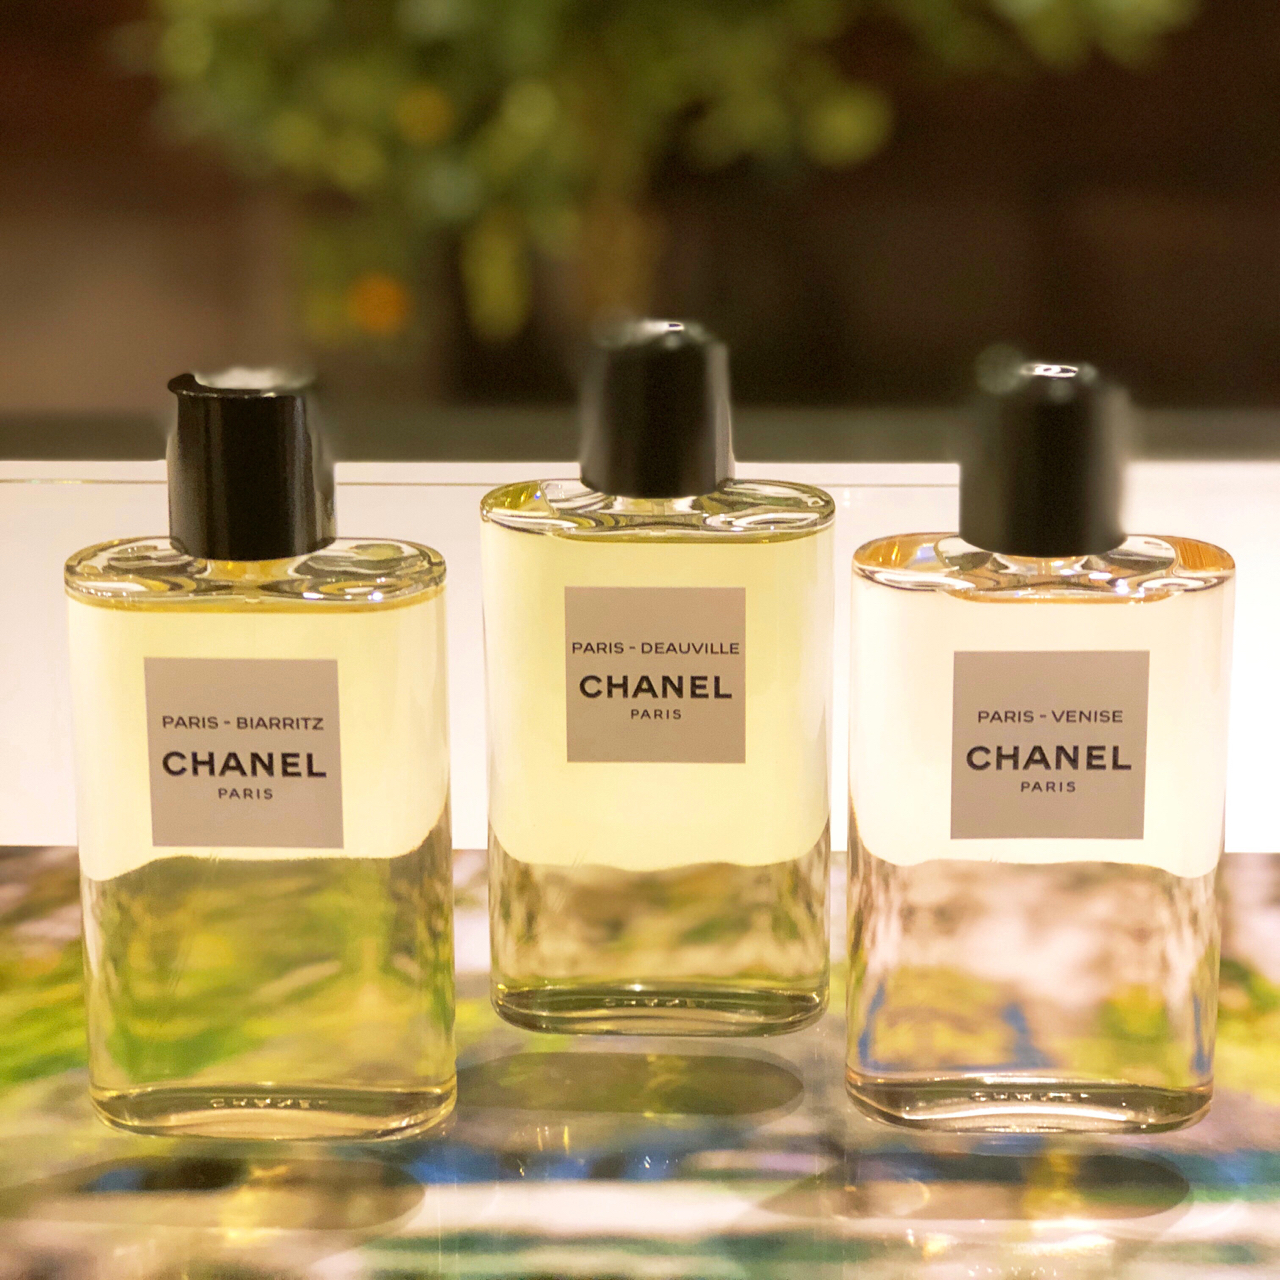 b3e618ab3c Olivier Polge's new Eaux – inspired by Chanel's travels - The ...